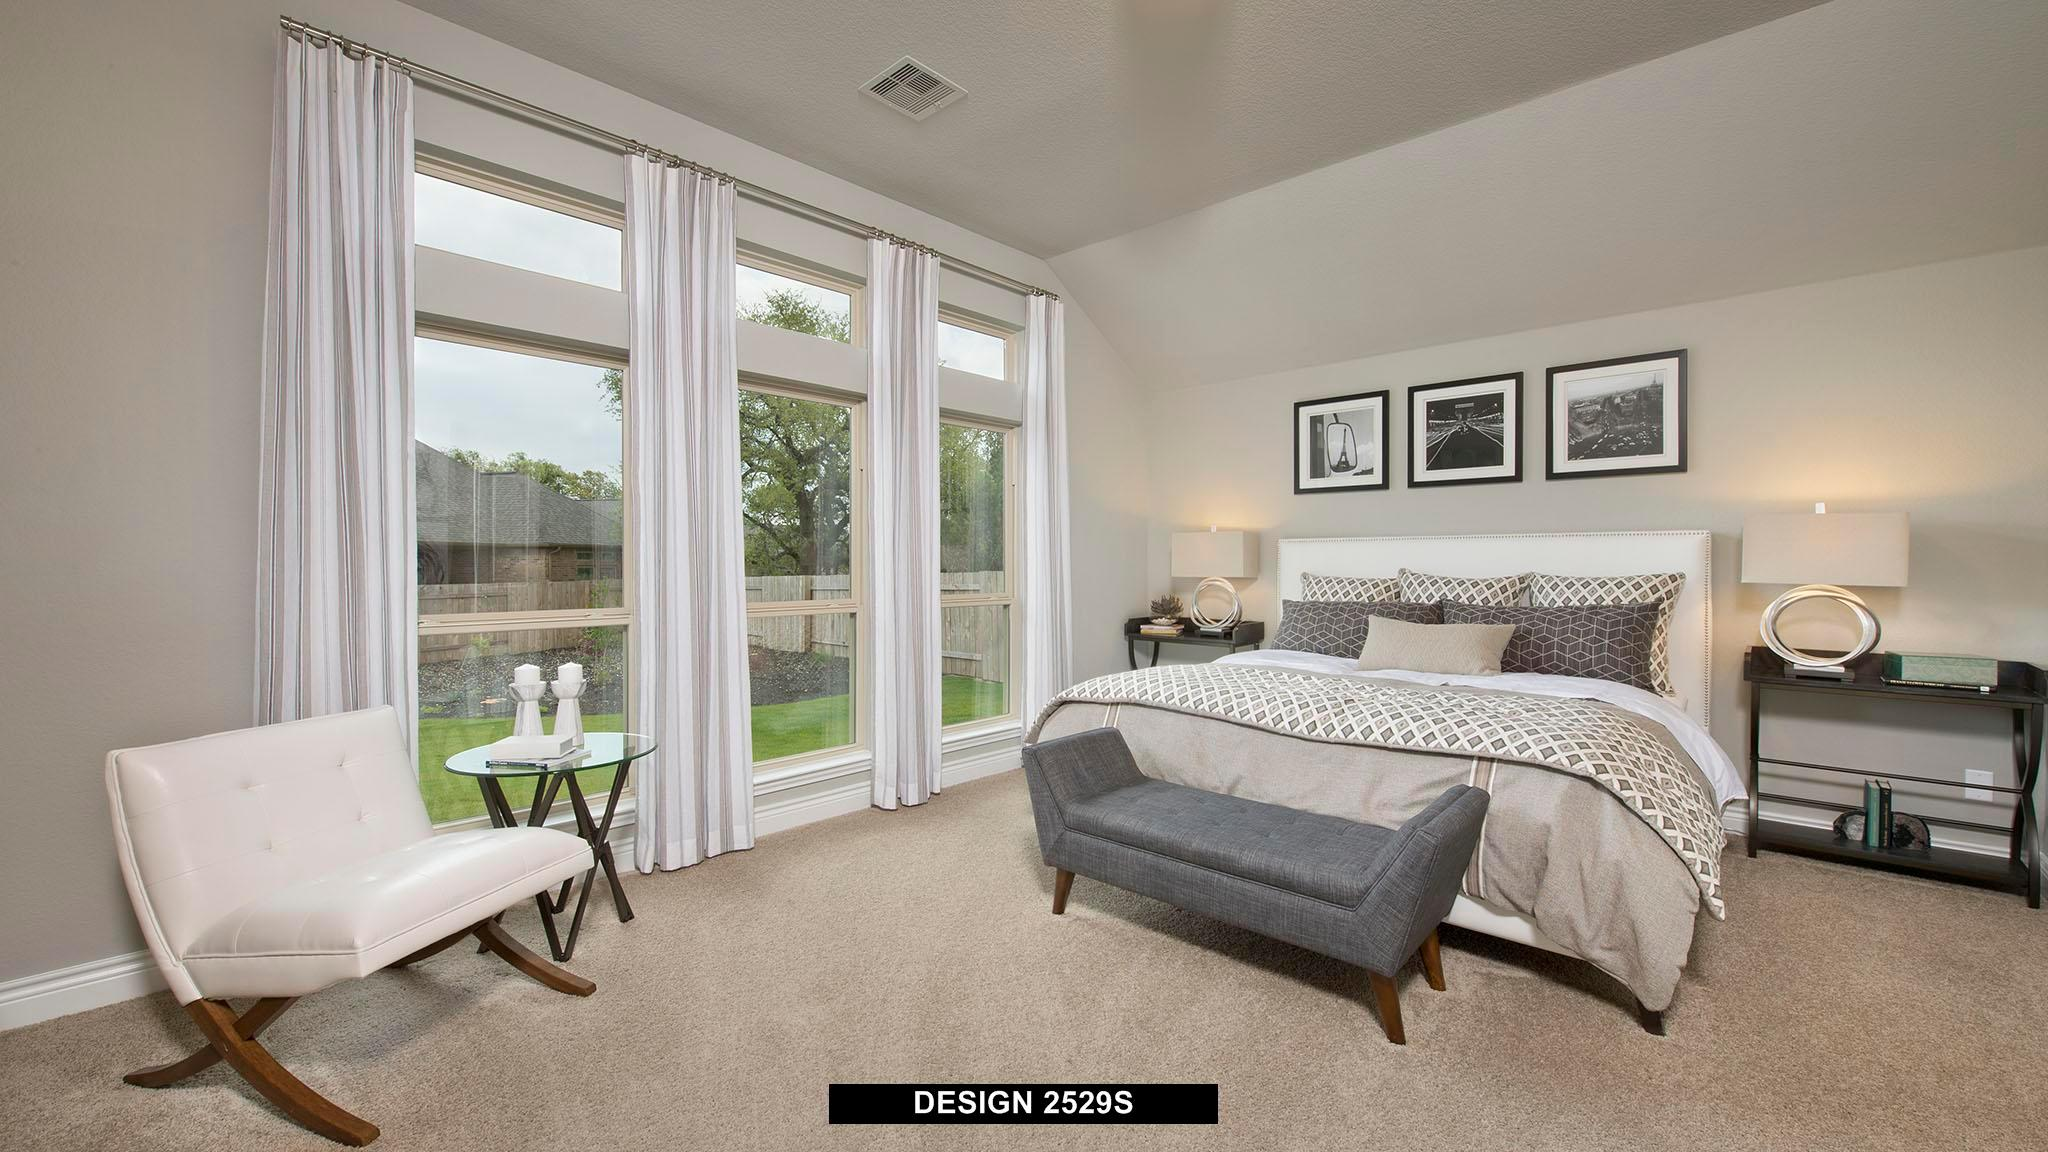 Bedroom featured in the 2529S By Perry Homes in Austin, TX